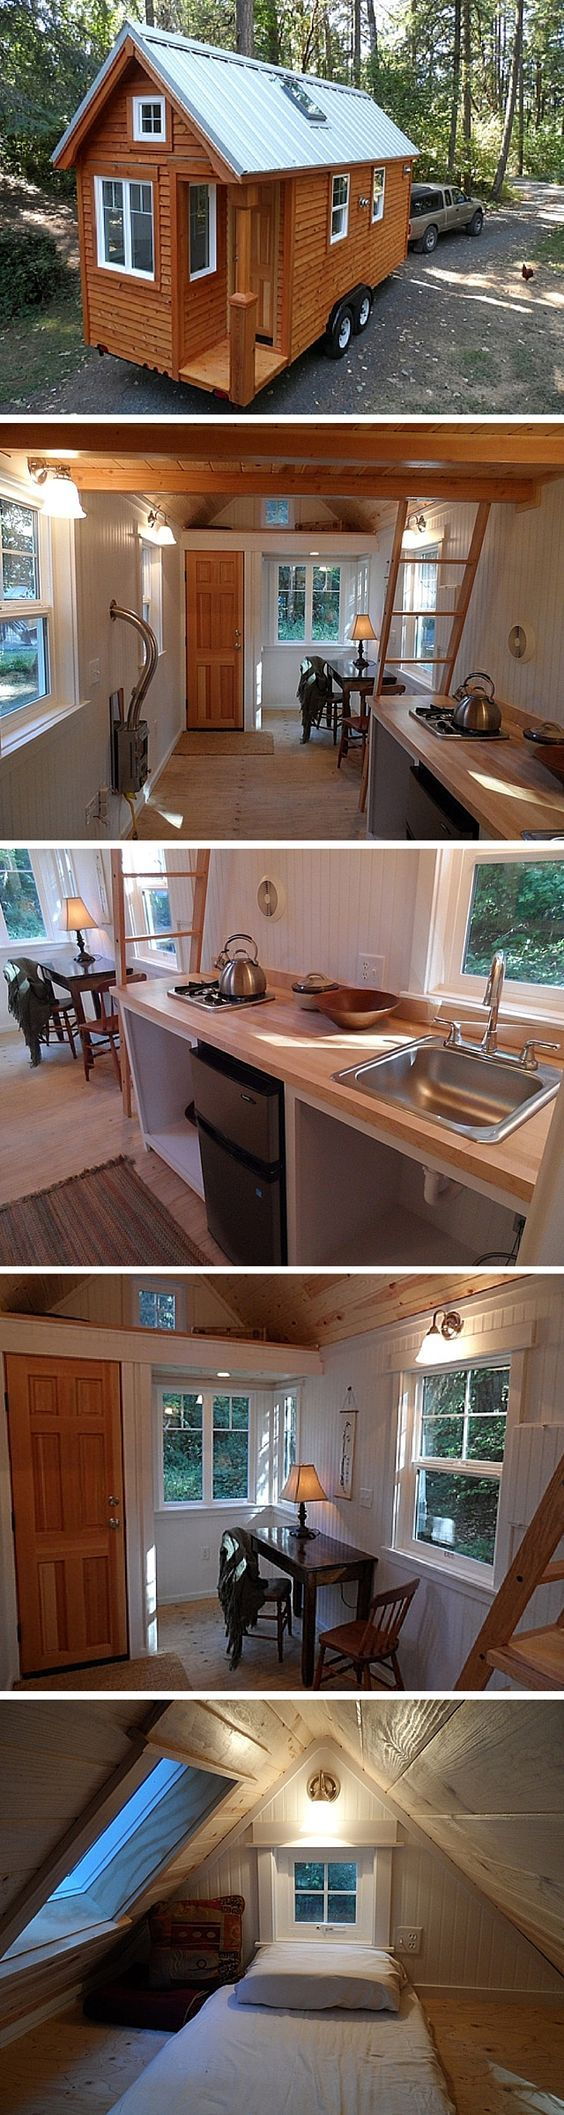 The Siskiyou (Colonial) is a 170 sq ft tiny home with a sustainable design